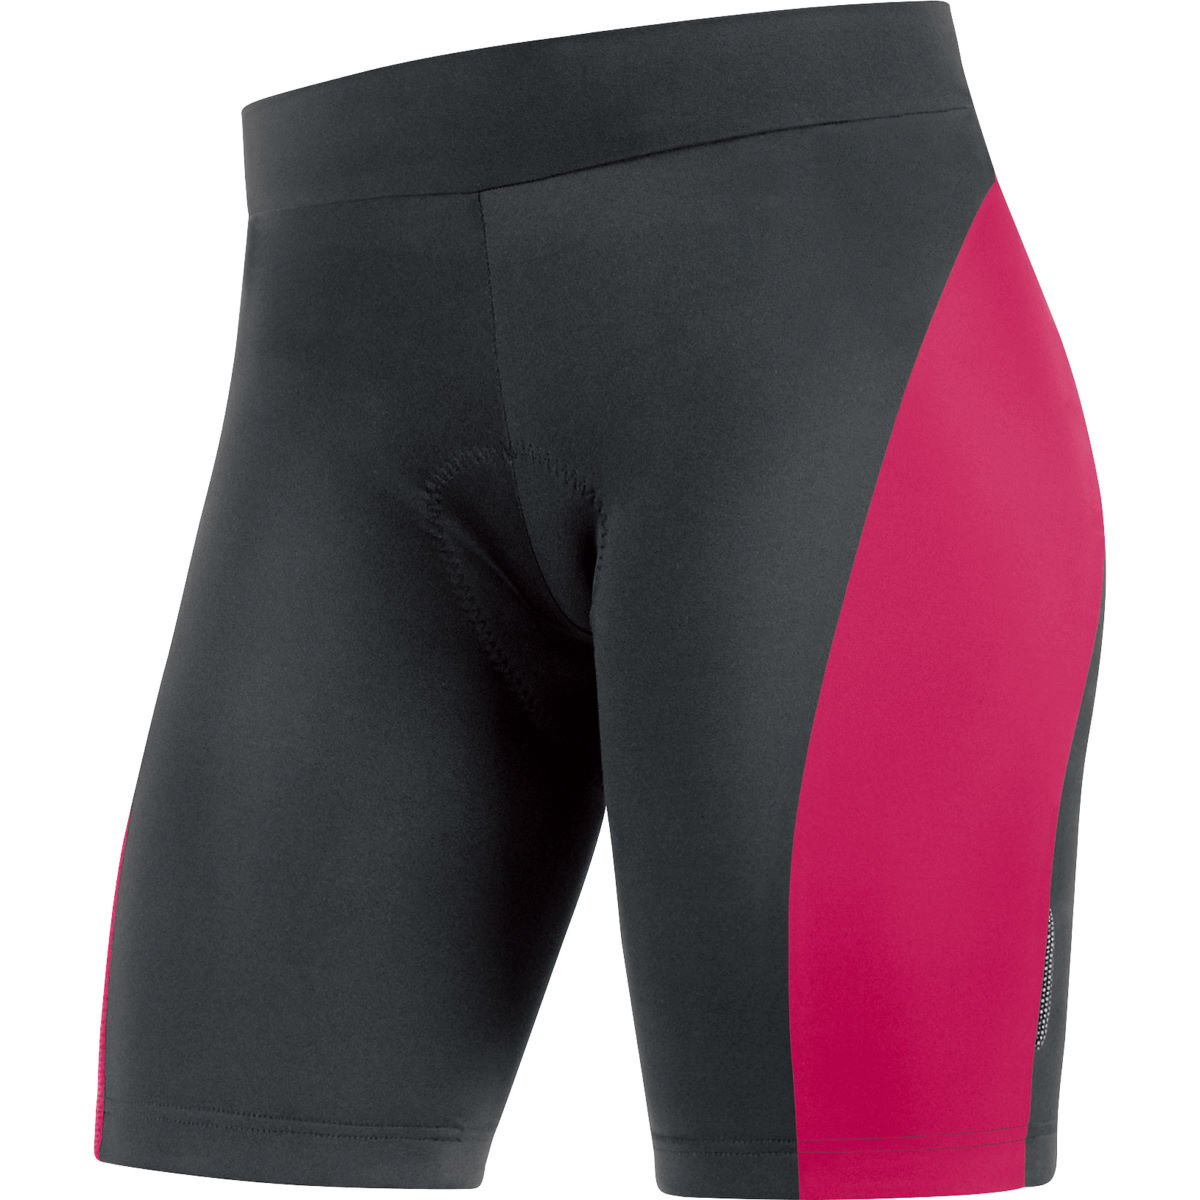 Gore Bike Wear Women's Element Short+ - Small 36 Black/Jazzy Pink